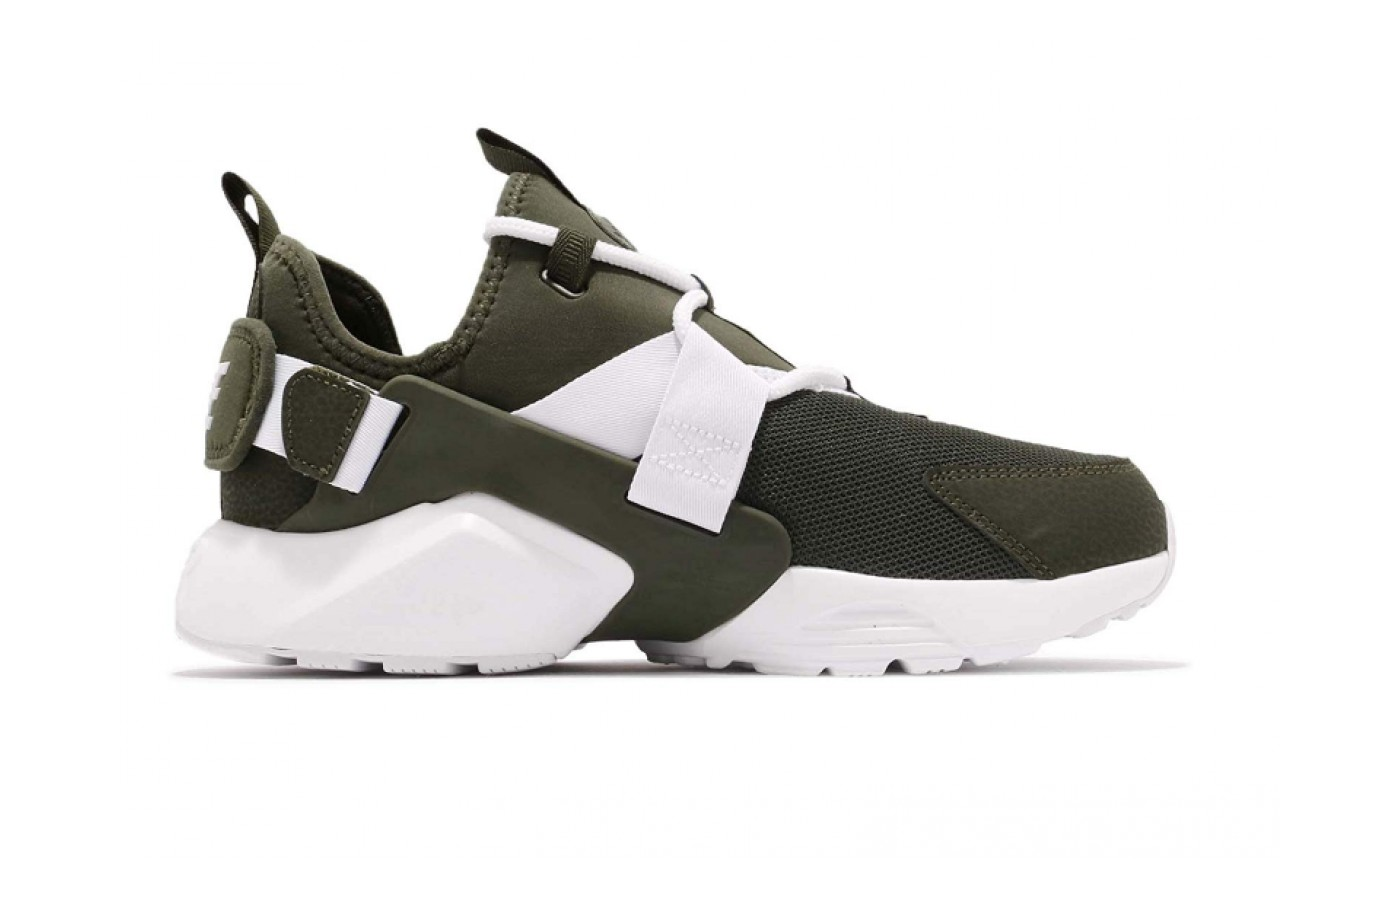 promo code 65d87 59149 Nike Air Huarache City Low left  Nike Air Huarache City Low right ...